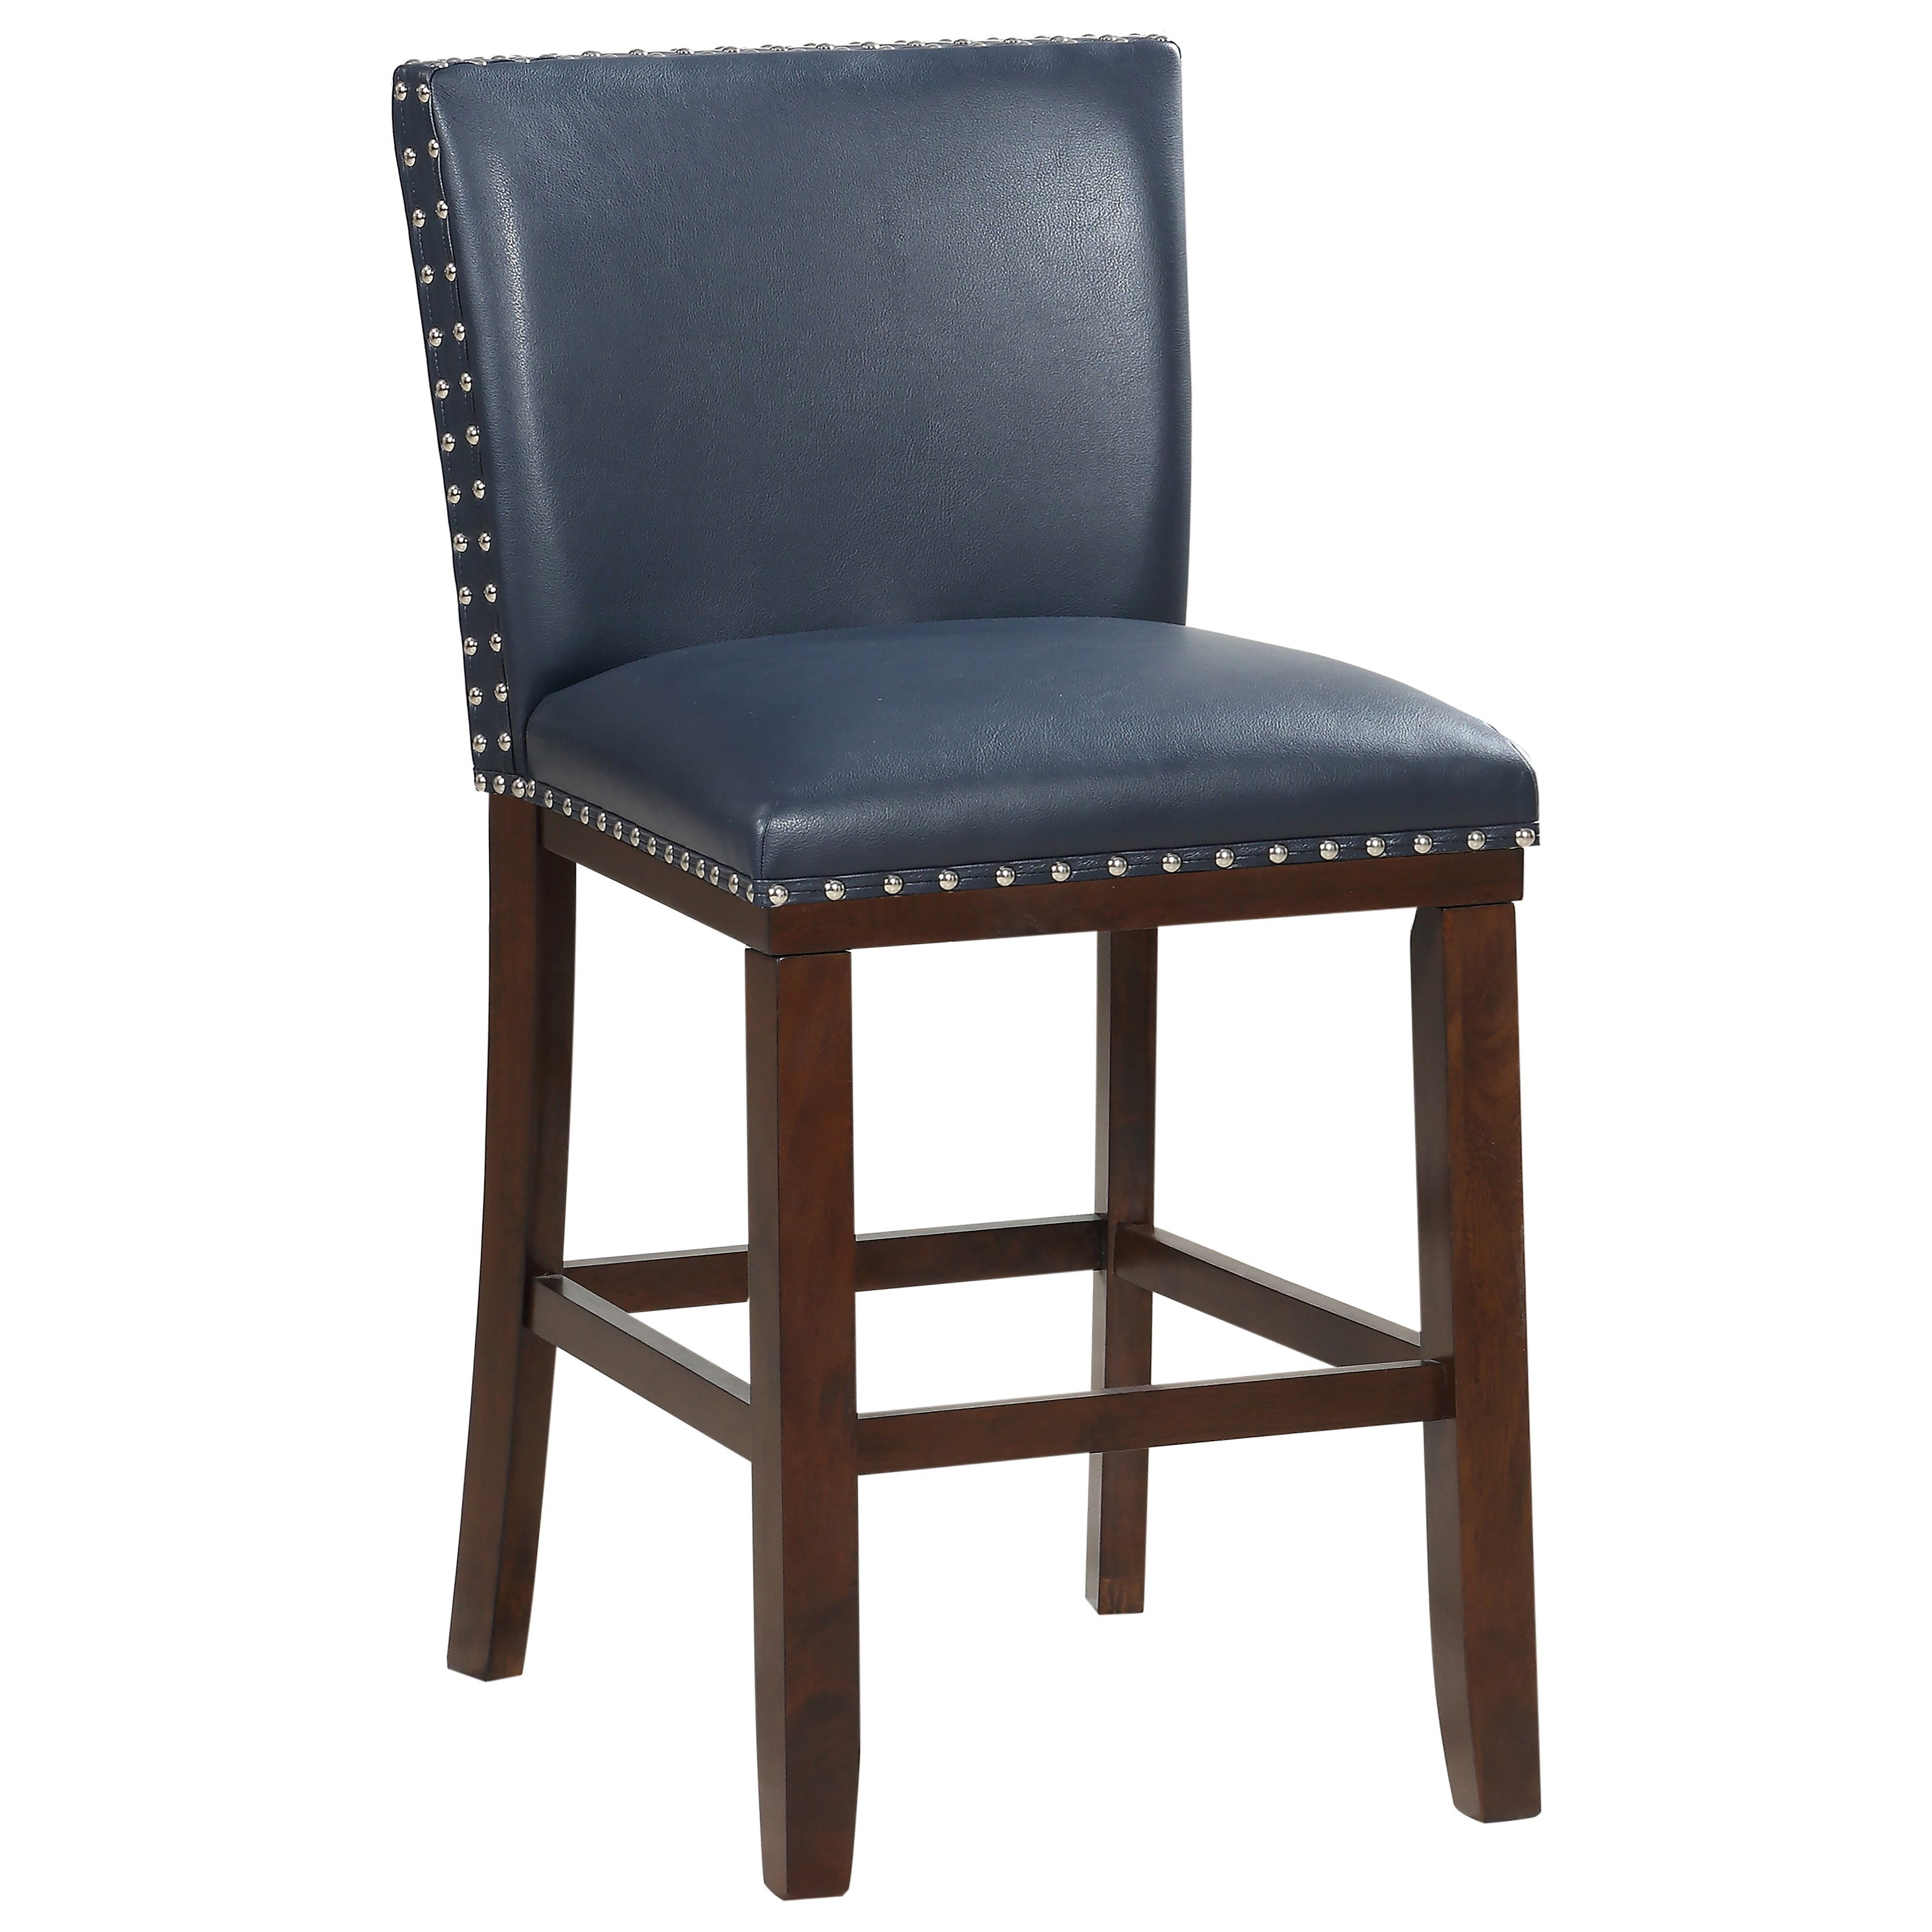 Tiffany Bonded Counter Chair by Steve Silver at Walker's Furniture